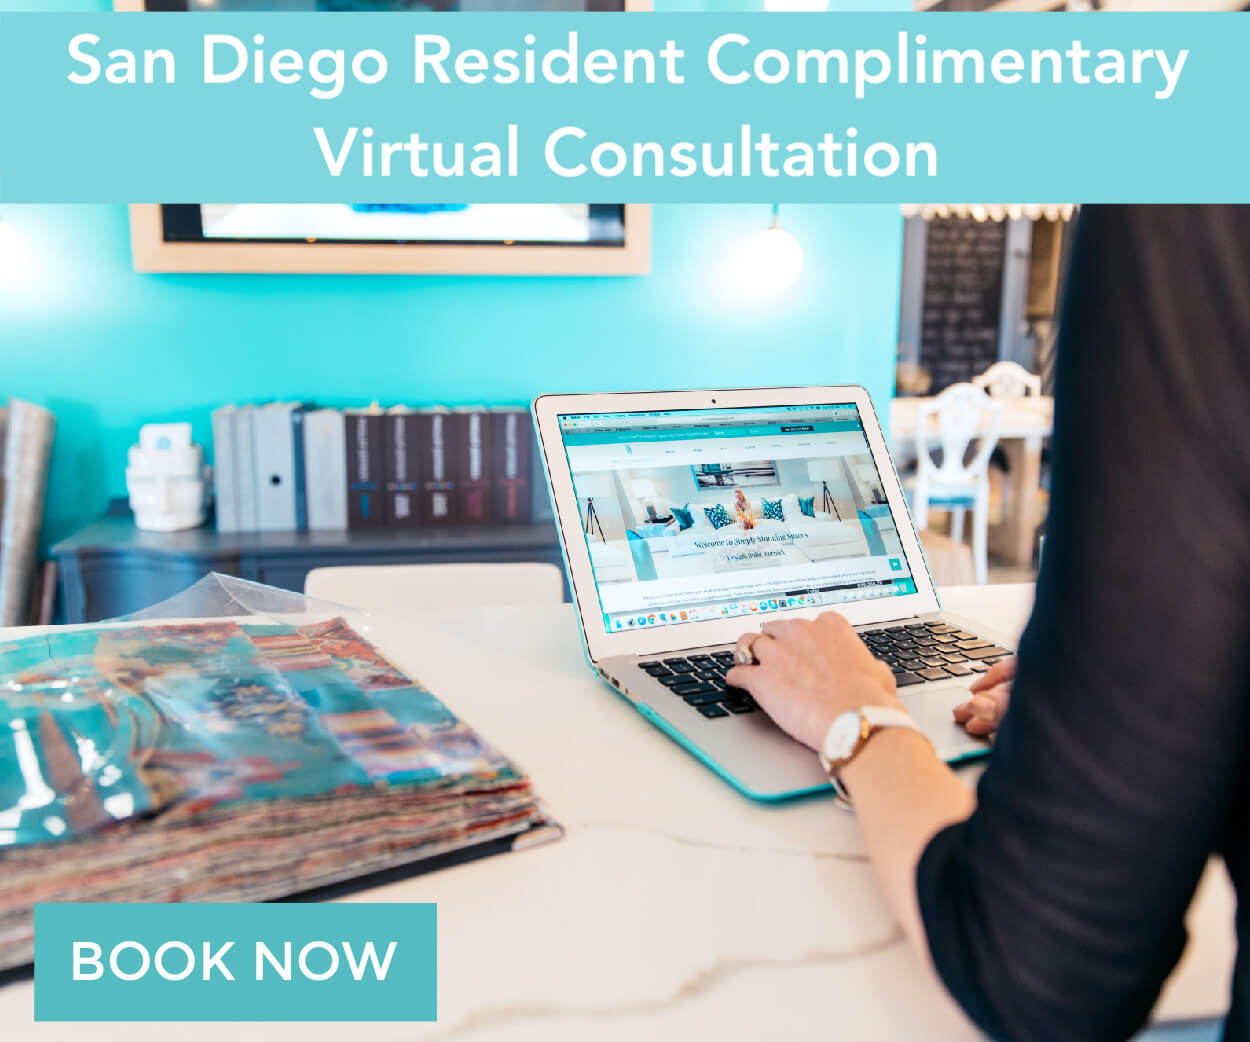 San Diego Resident Complimentary Virtual Consultation